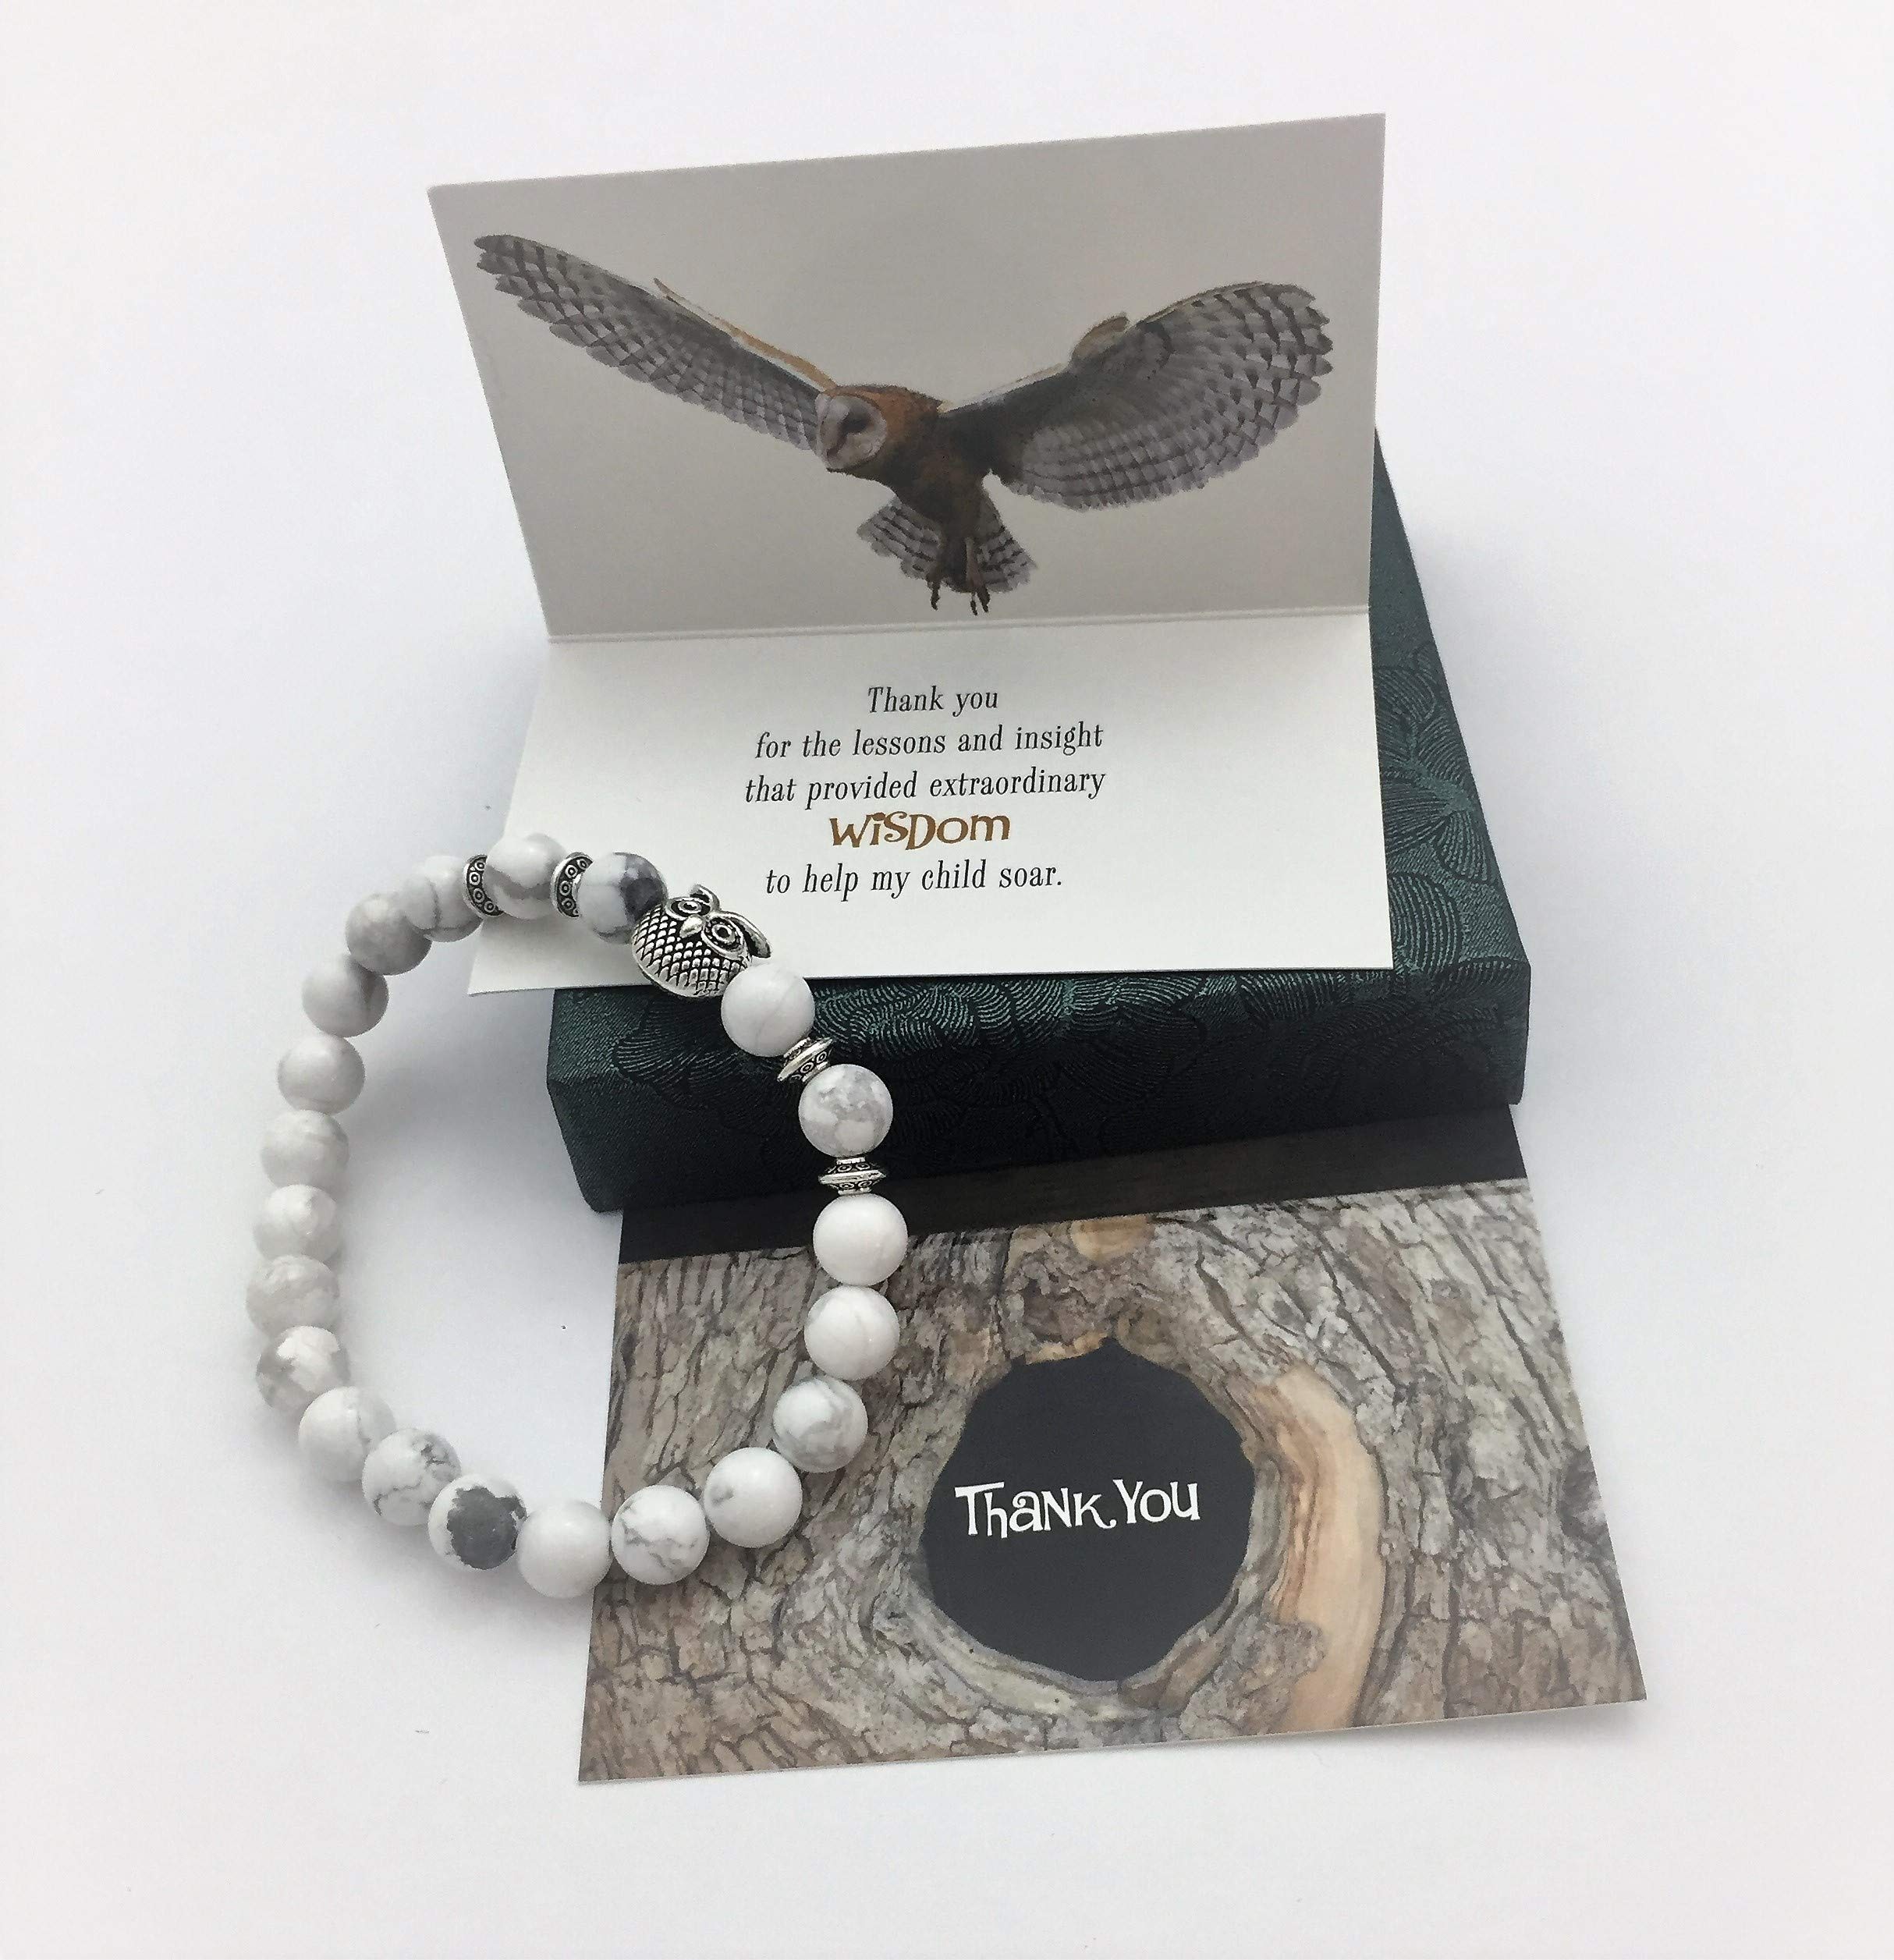 Smiling Wisdom - Owl Stretch Bracelet - Thank You Teacher Appreciation - Mentor Coach Counselor Gift Set - For Her Woman from Parent of Son or Daughter Student - White Grey - Wisdom